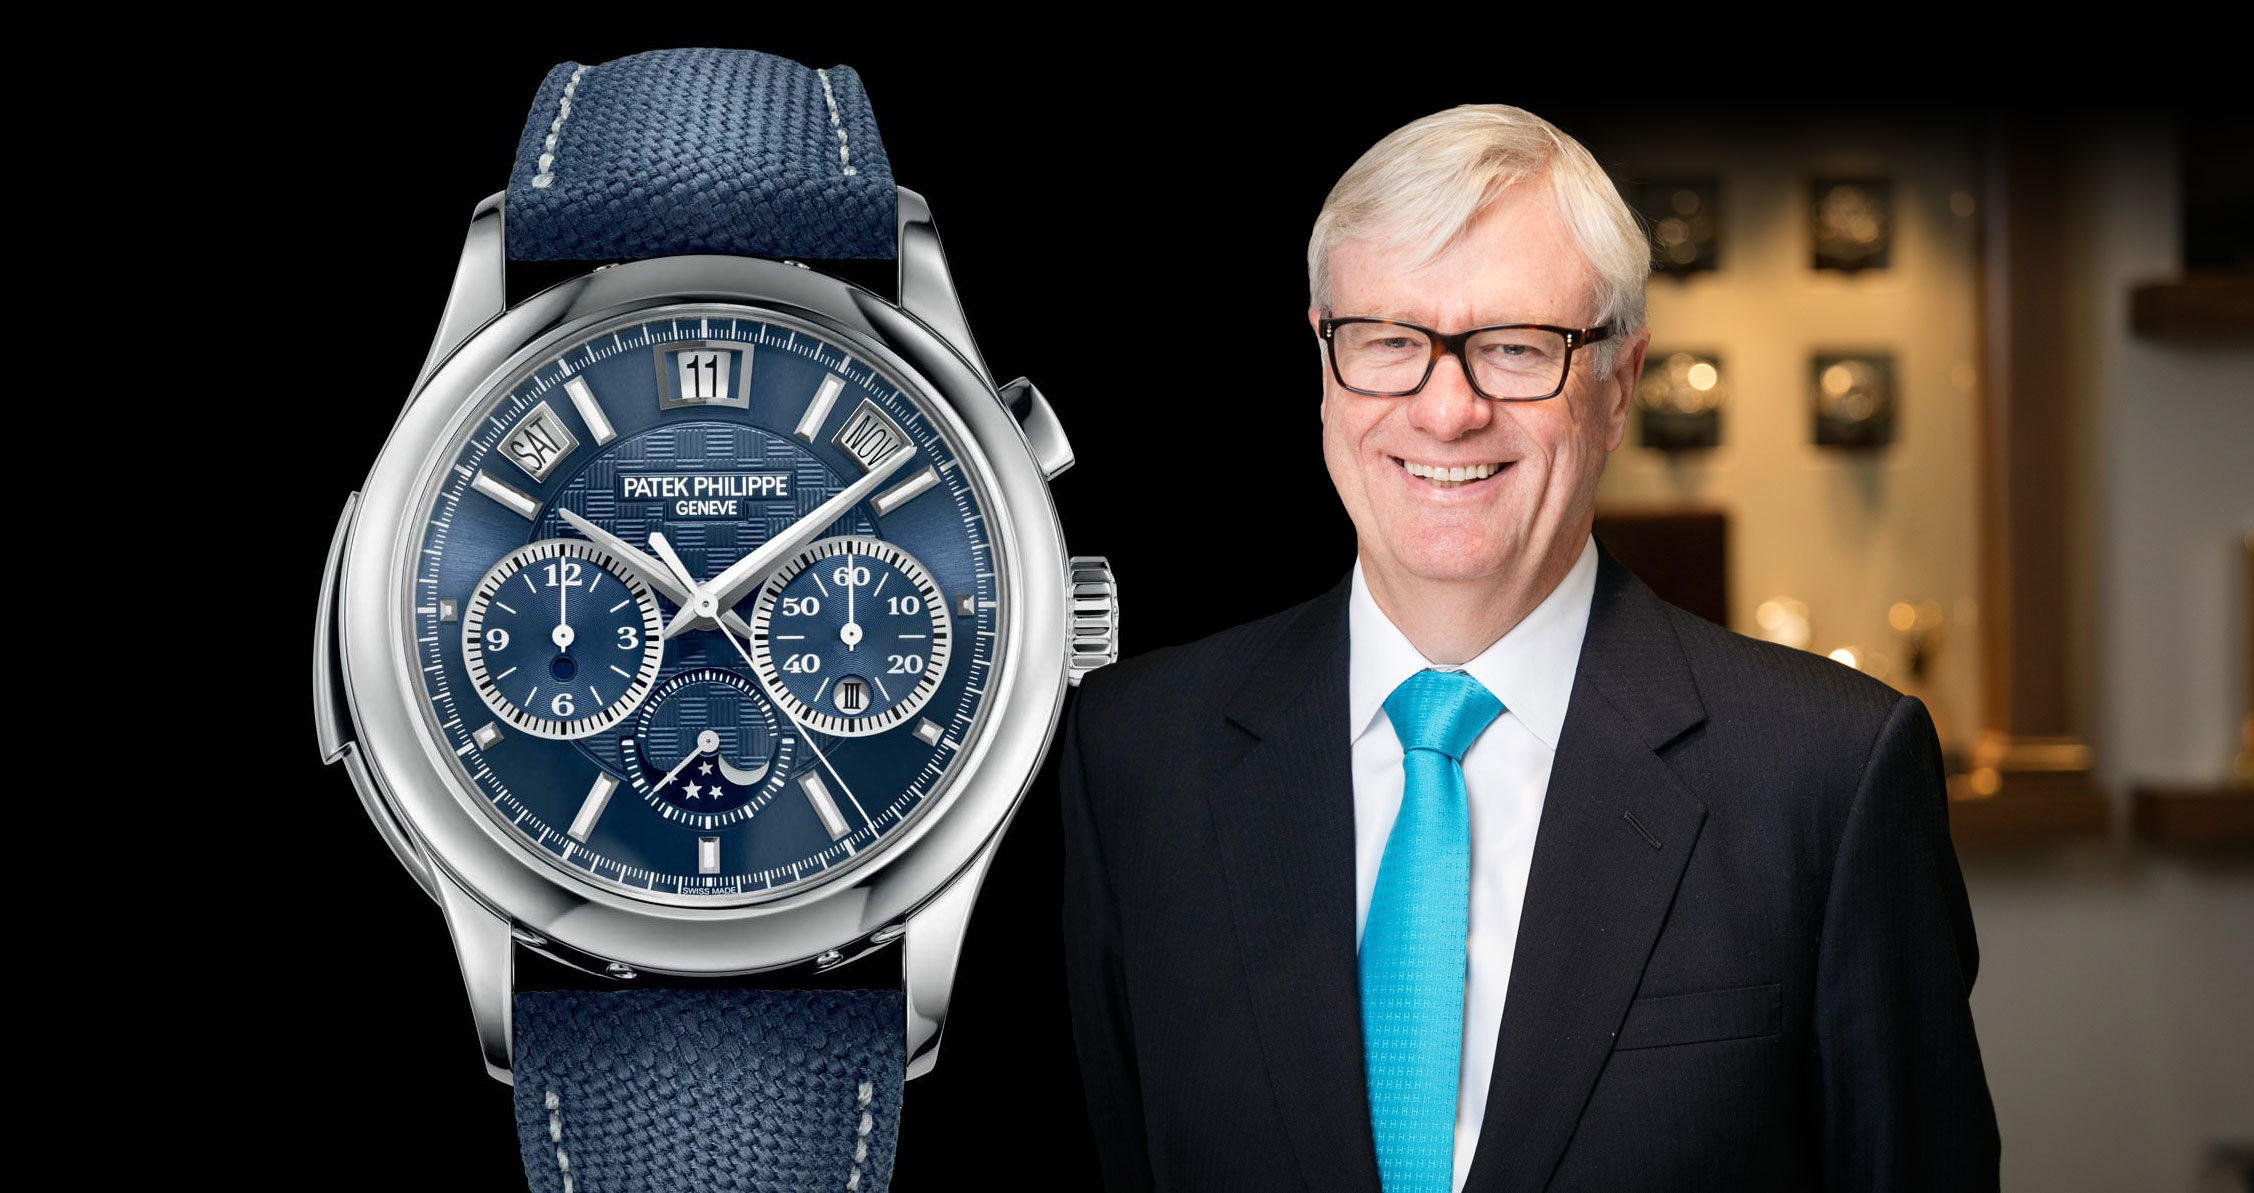 David Duggan discusses Patek's new awe-inspiring, one-of-a-kind timepiece, the Grand Complication Reference 5208T-010